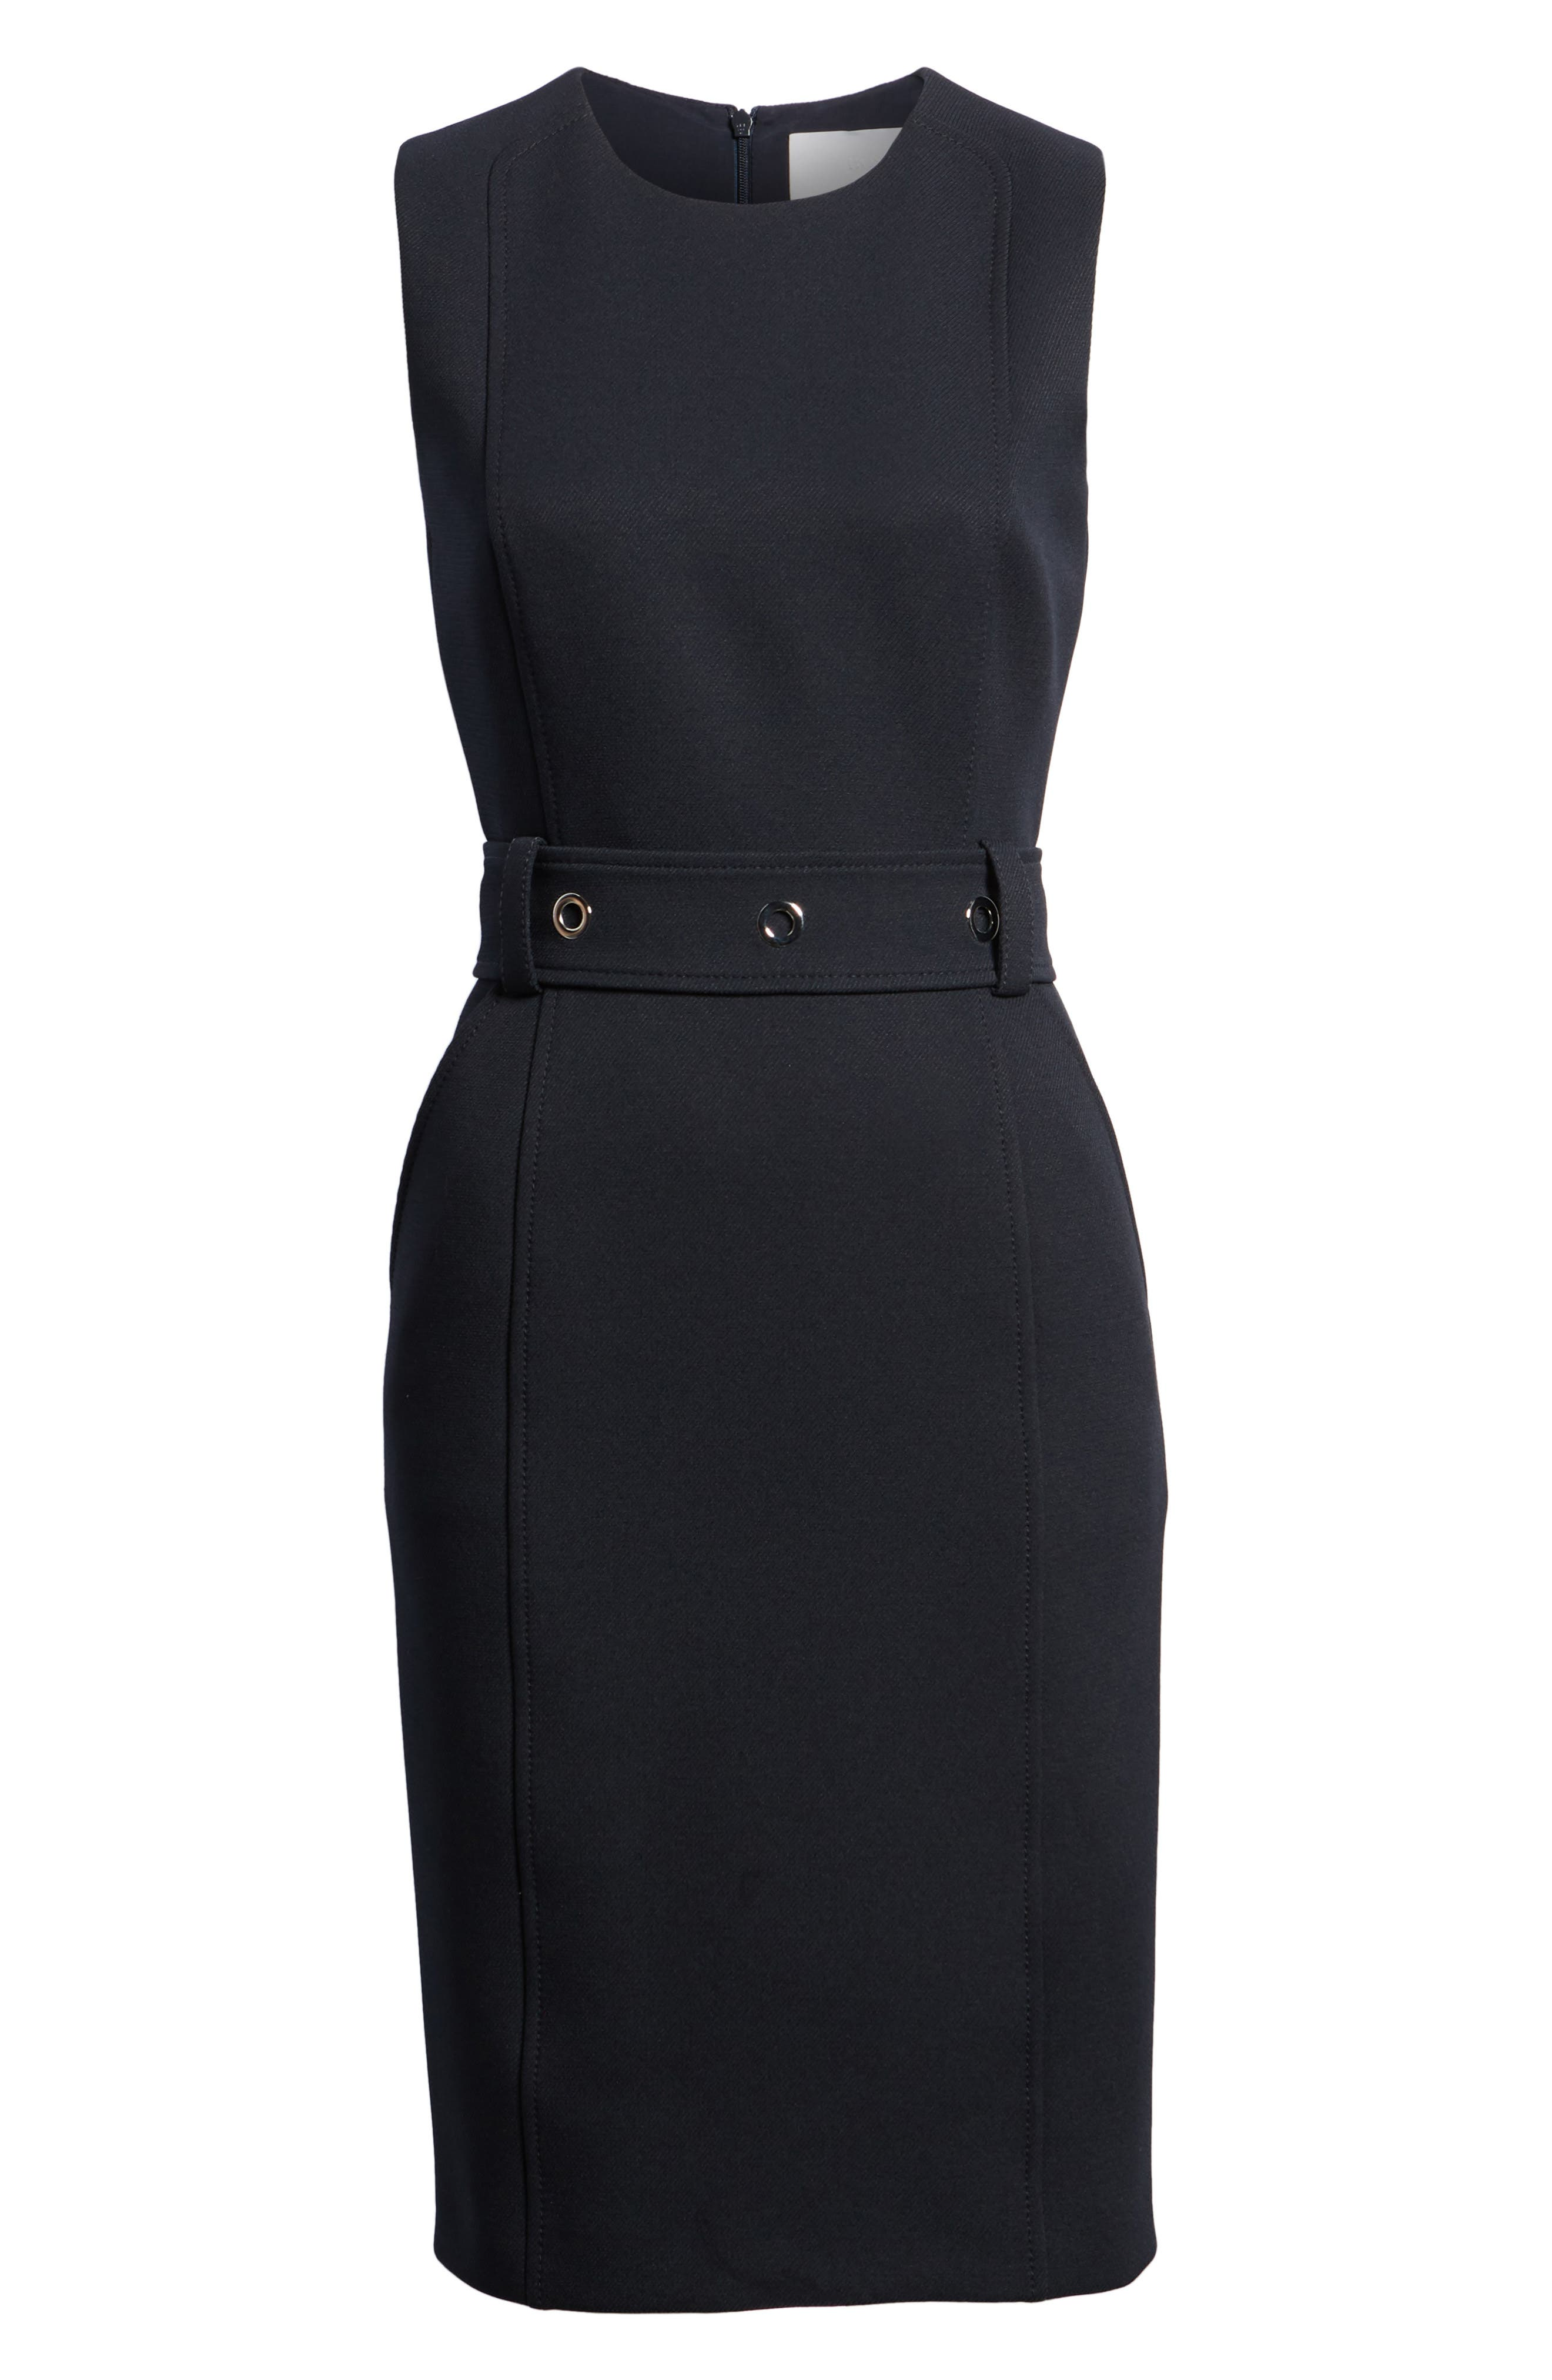 Duleama Belted Sheath Dress,                             Alternate thumbnail 6, color,